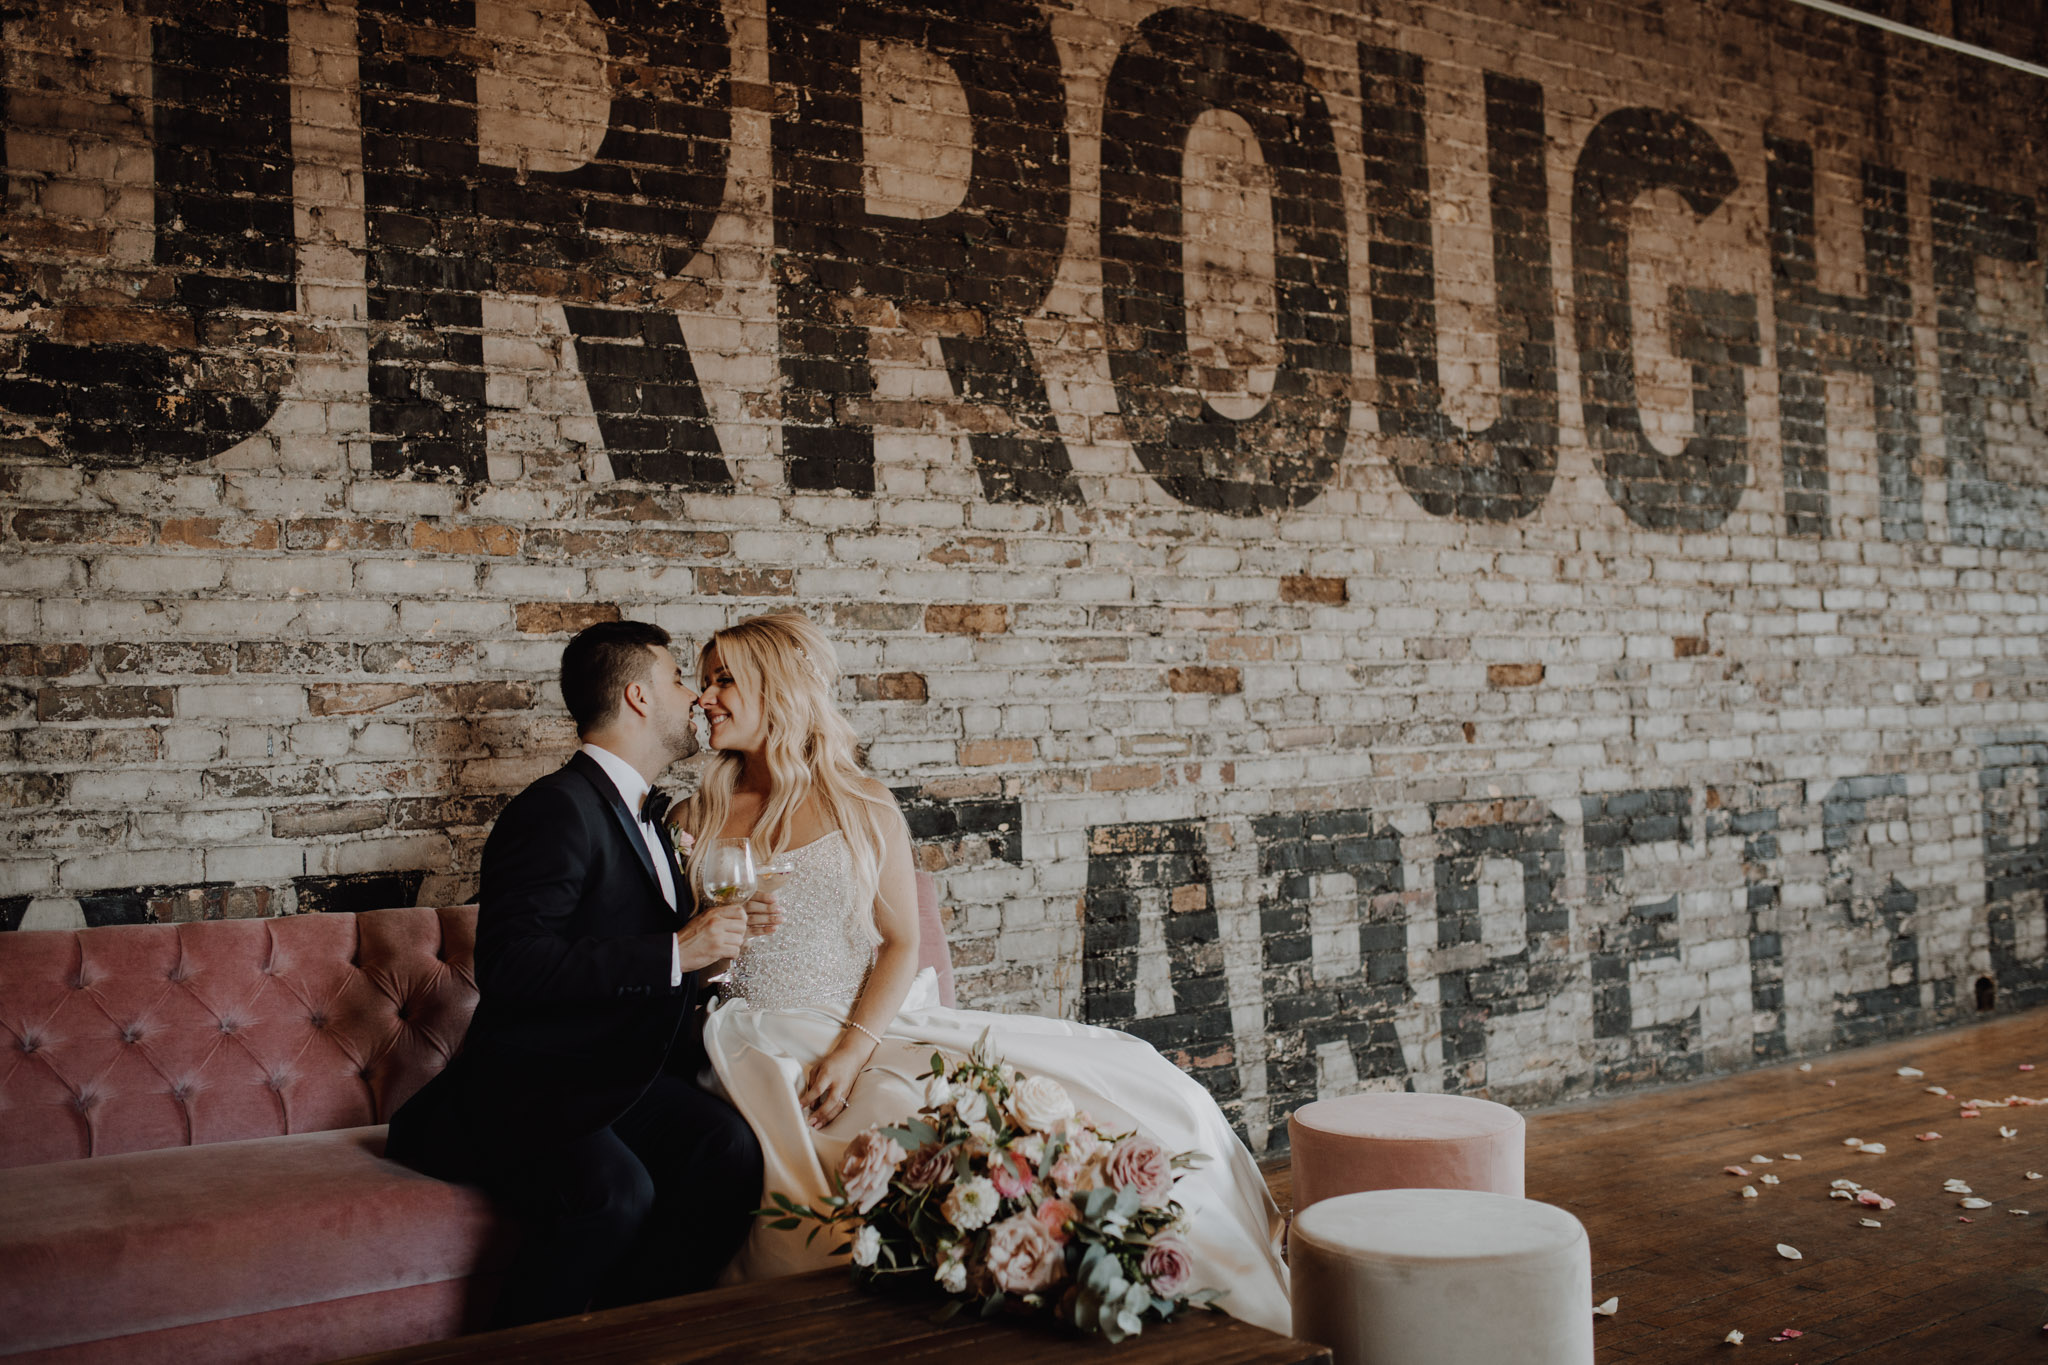 Pink velvet decor at The Burroughes Wedding. Love By Lynzie. Wedding Photographer Jennifer See Studios.